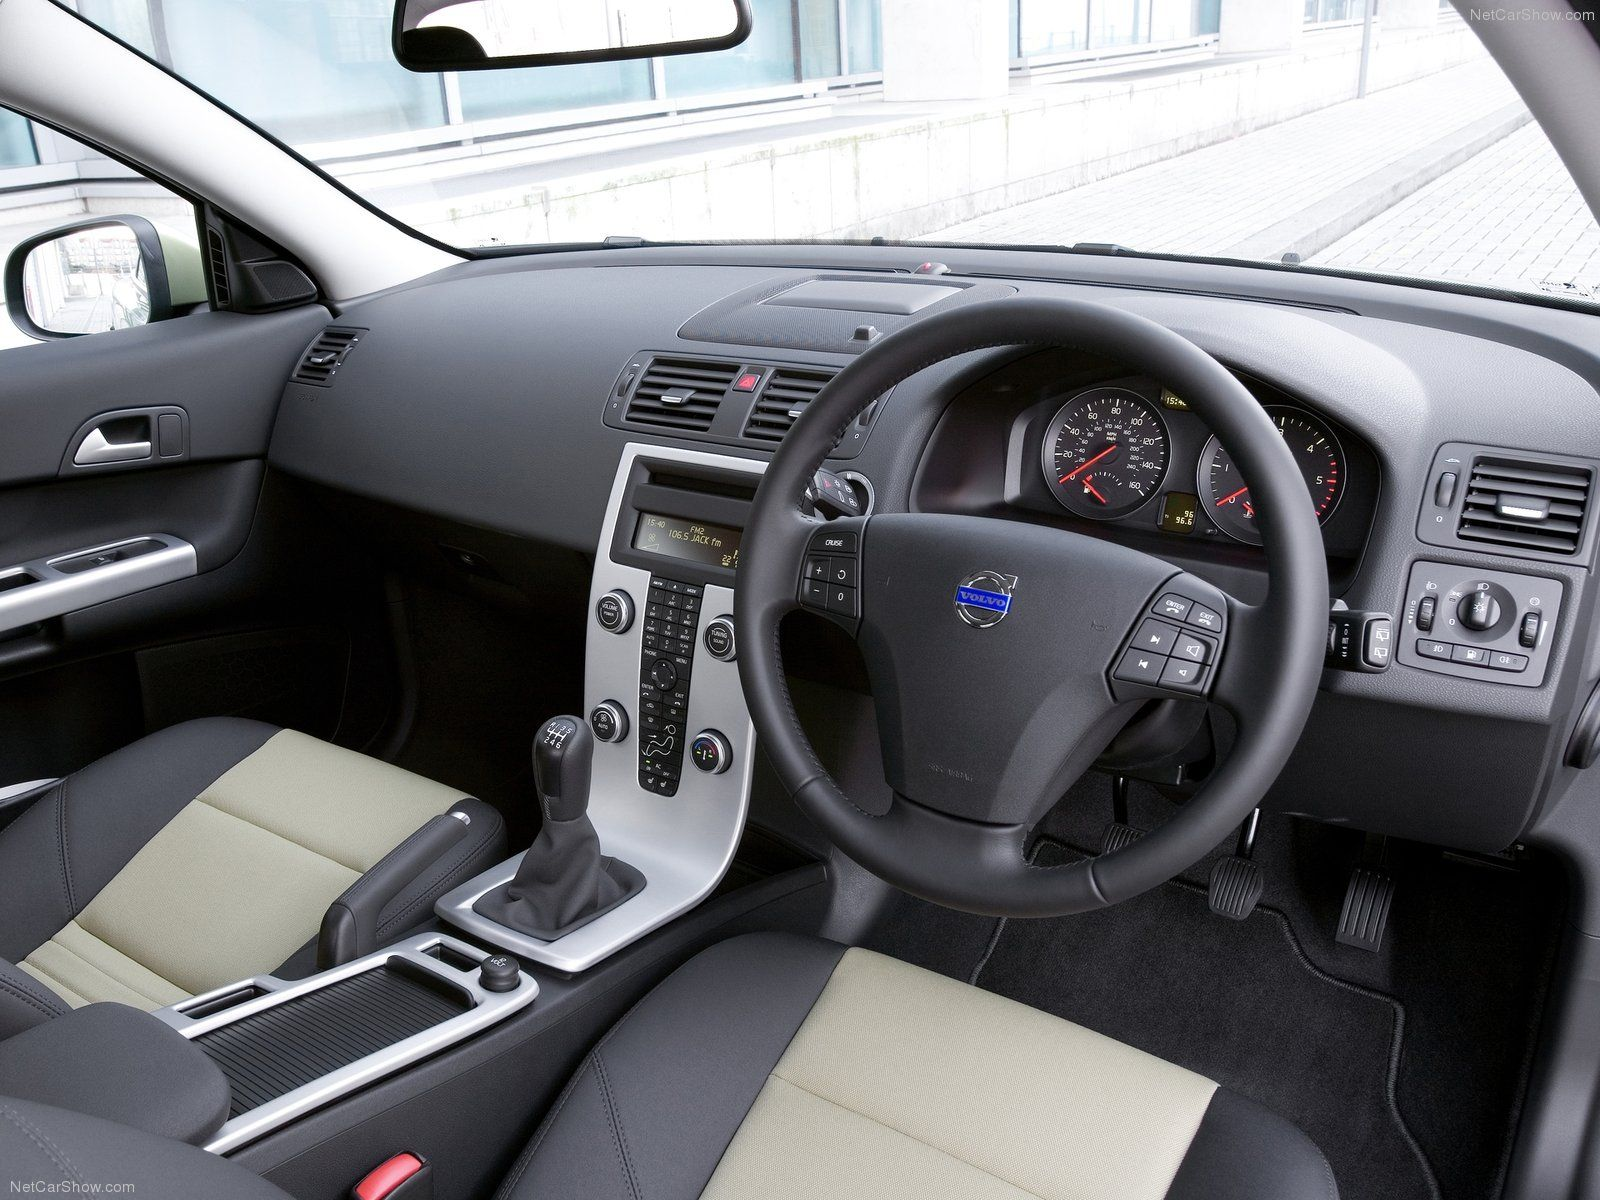 4e66638595d8aa1eccb6dc0efd9d0a5b Great Description About Volvo C30 R Design with Interesting Gallery Cars Review